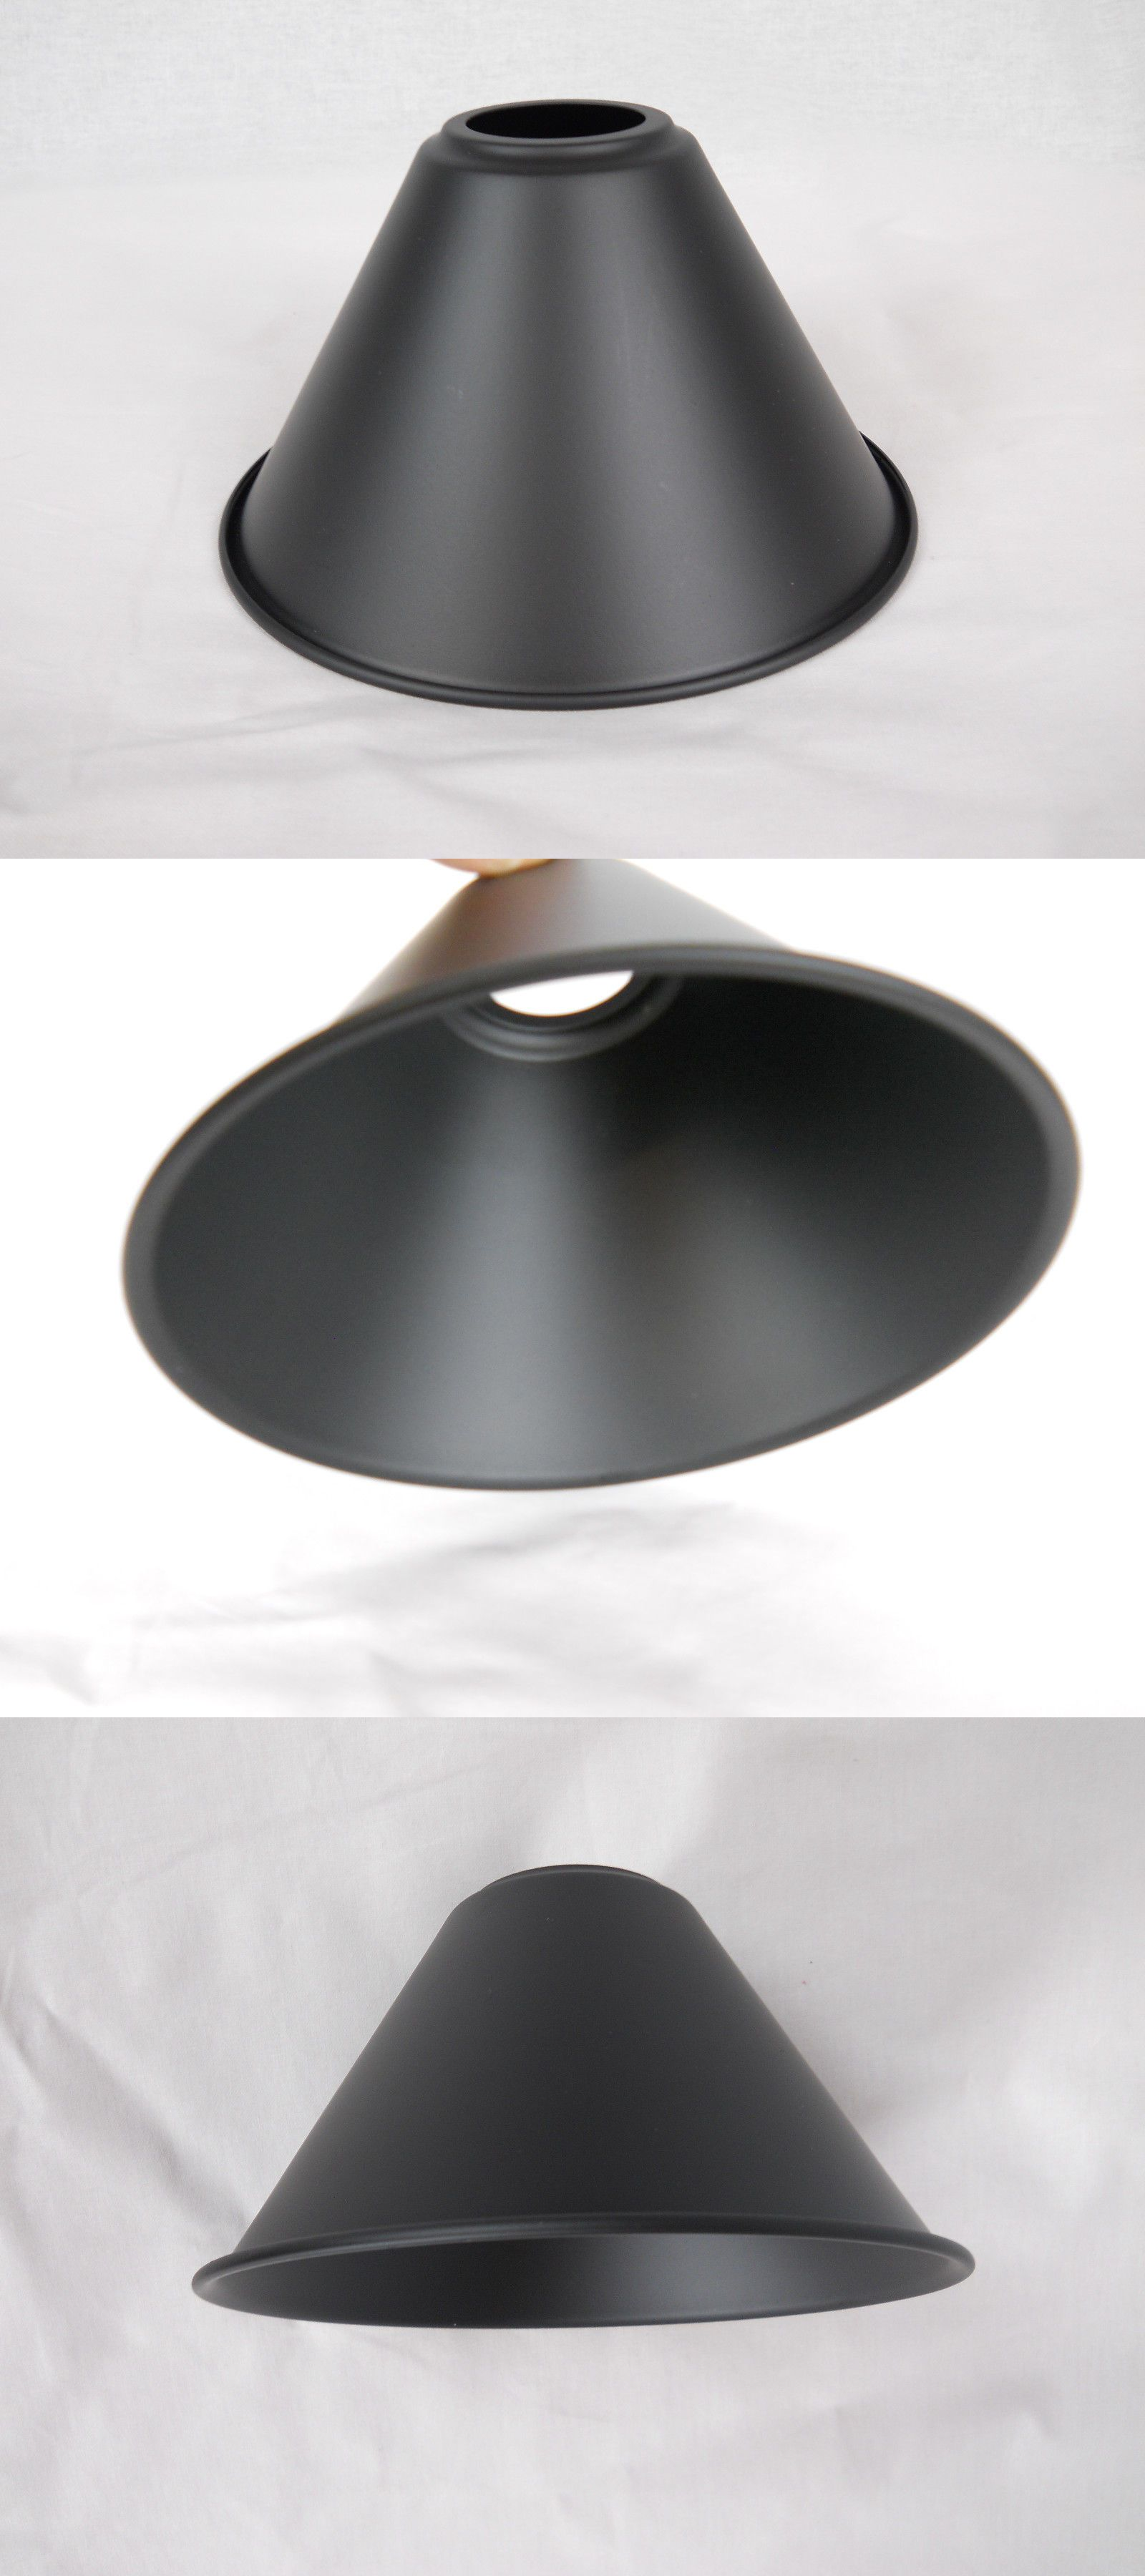 Lamp Shades 20708 Metal Shade Pendant Vintage Cone Design Black Powder Coat 7 Dia It Now Only 15 On Ebay